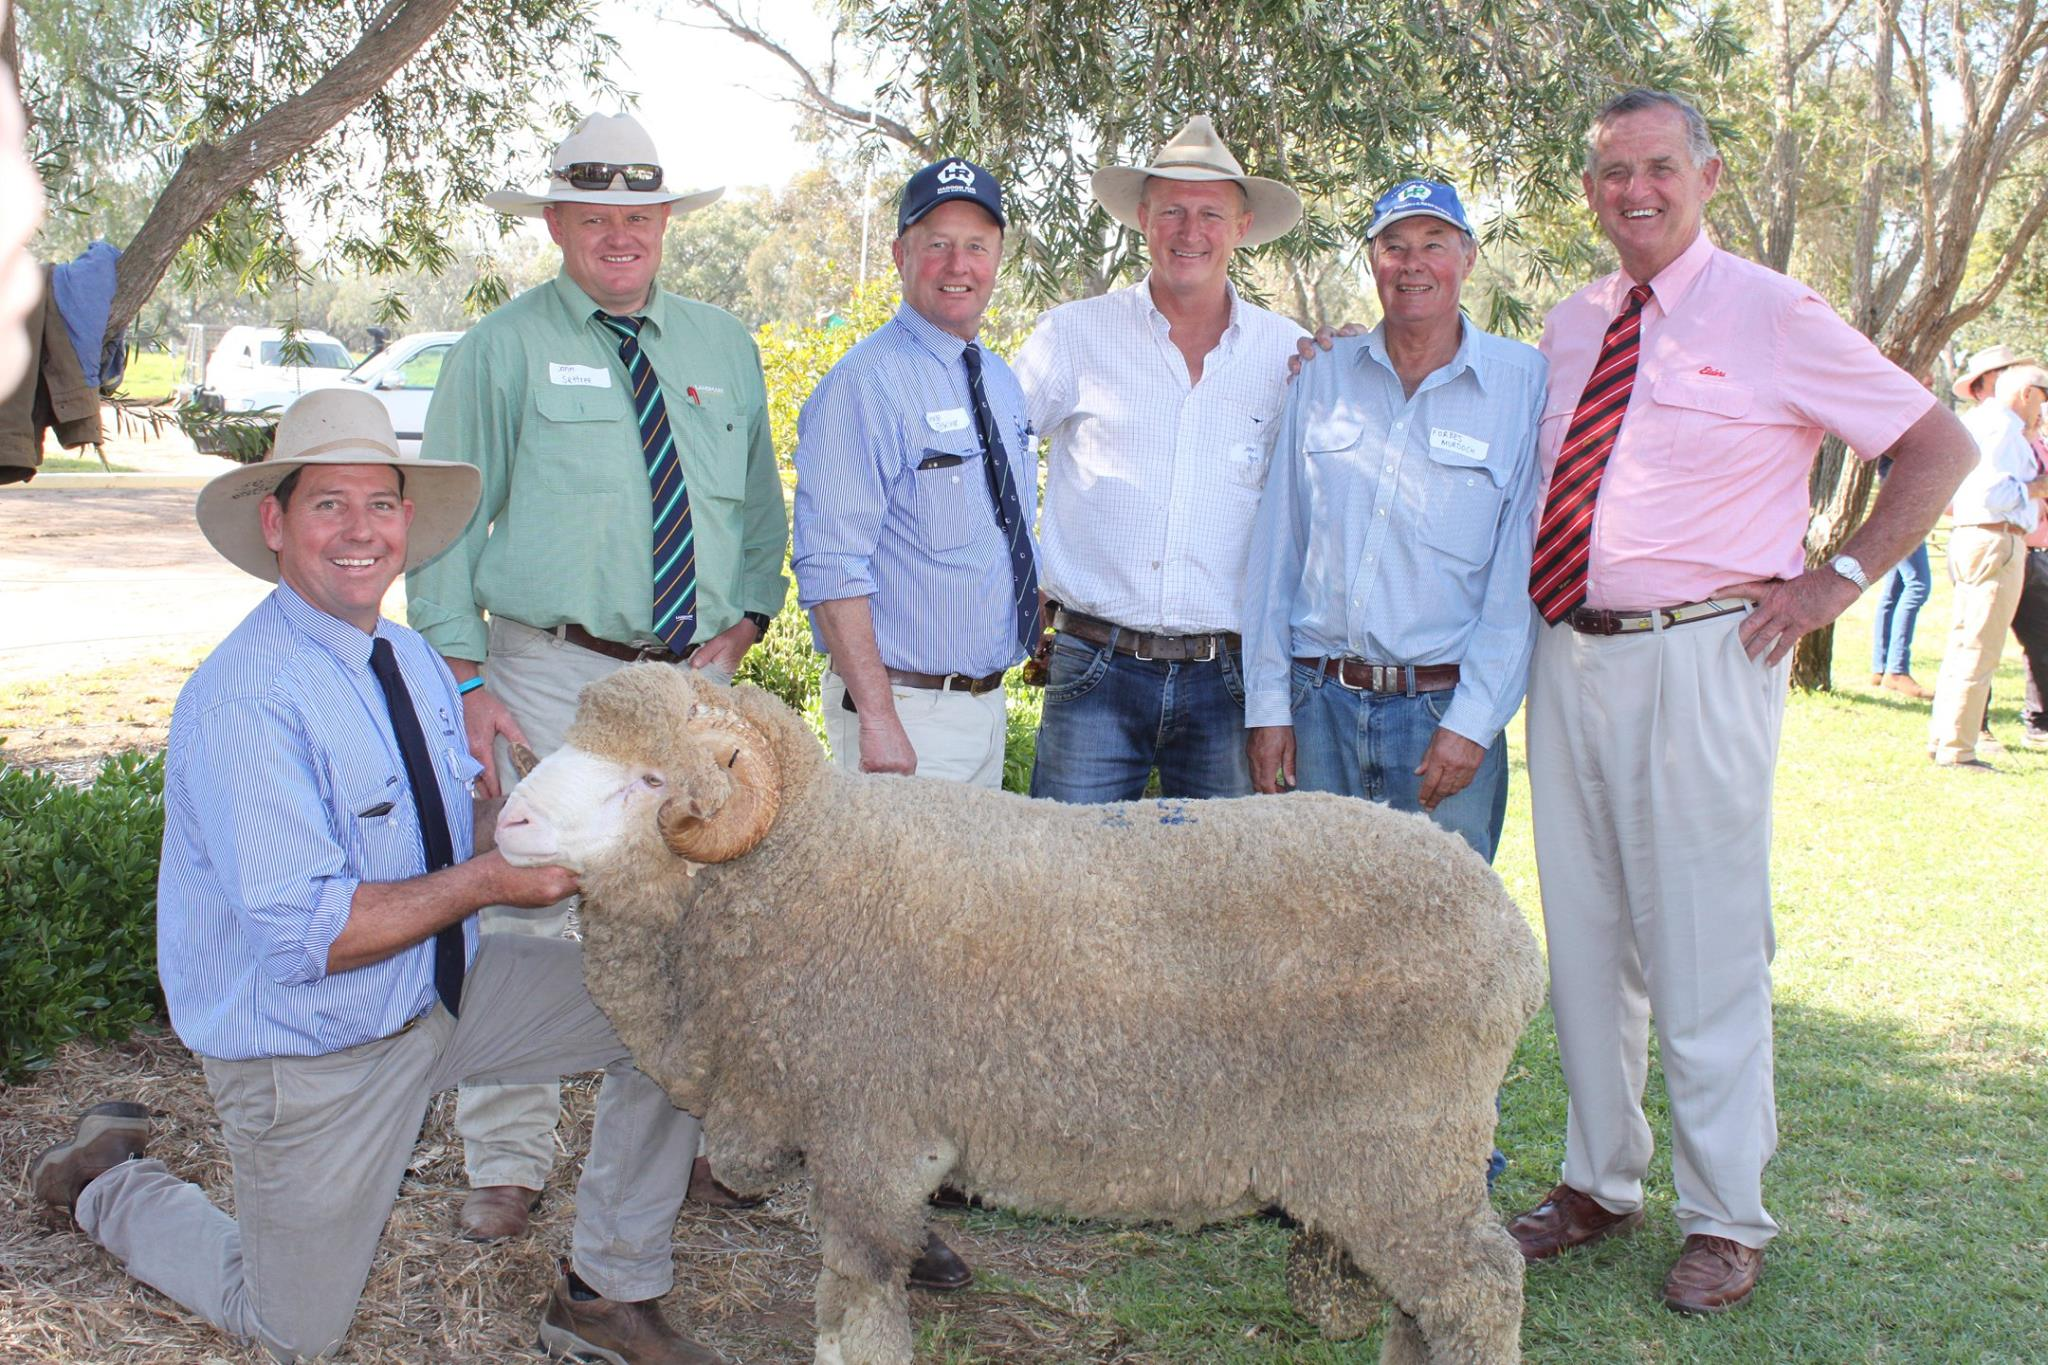 """Pictured here: Andy Maclean, John Suttree (Landmark), George Falkiner (HR Principal) Top Buyer James Morris """"Bonanza"""" Walgett, Stud Master Forbes Murdoch, and Auctioneer Andy McGeoch with the Top Priced Merino Ram sold for $11,000"""